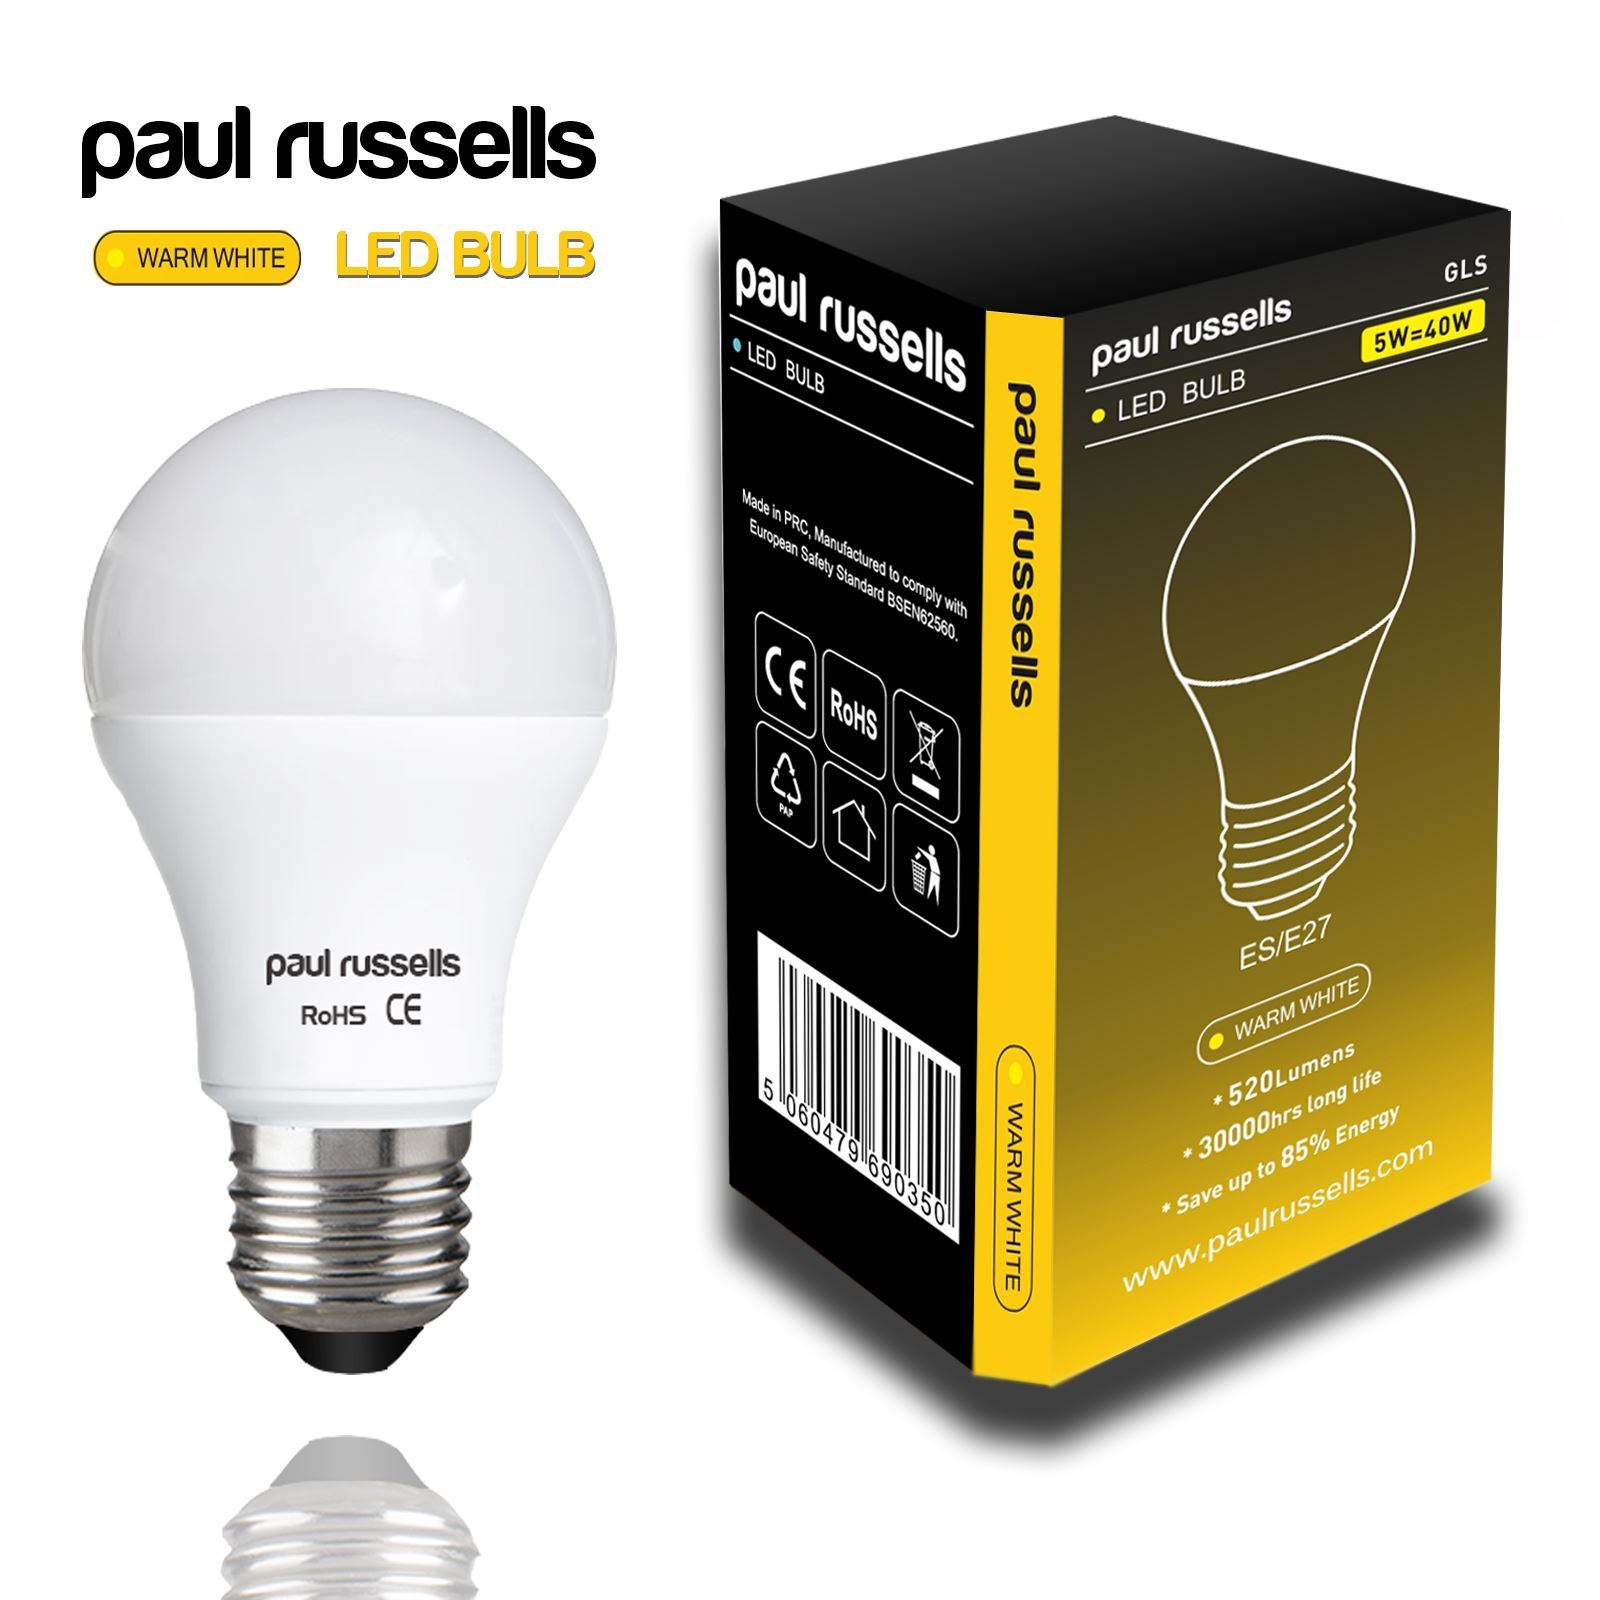 led gu10 e14 e27 b22 25w 40w 60w 100w equiv candle golf gls spot light bulbs ebay. Black Bedroom Furniture Sets. Home Design Ideas